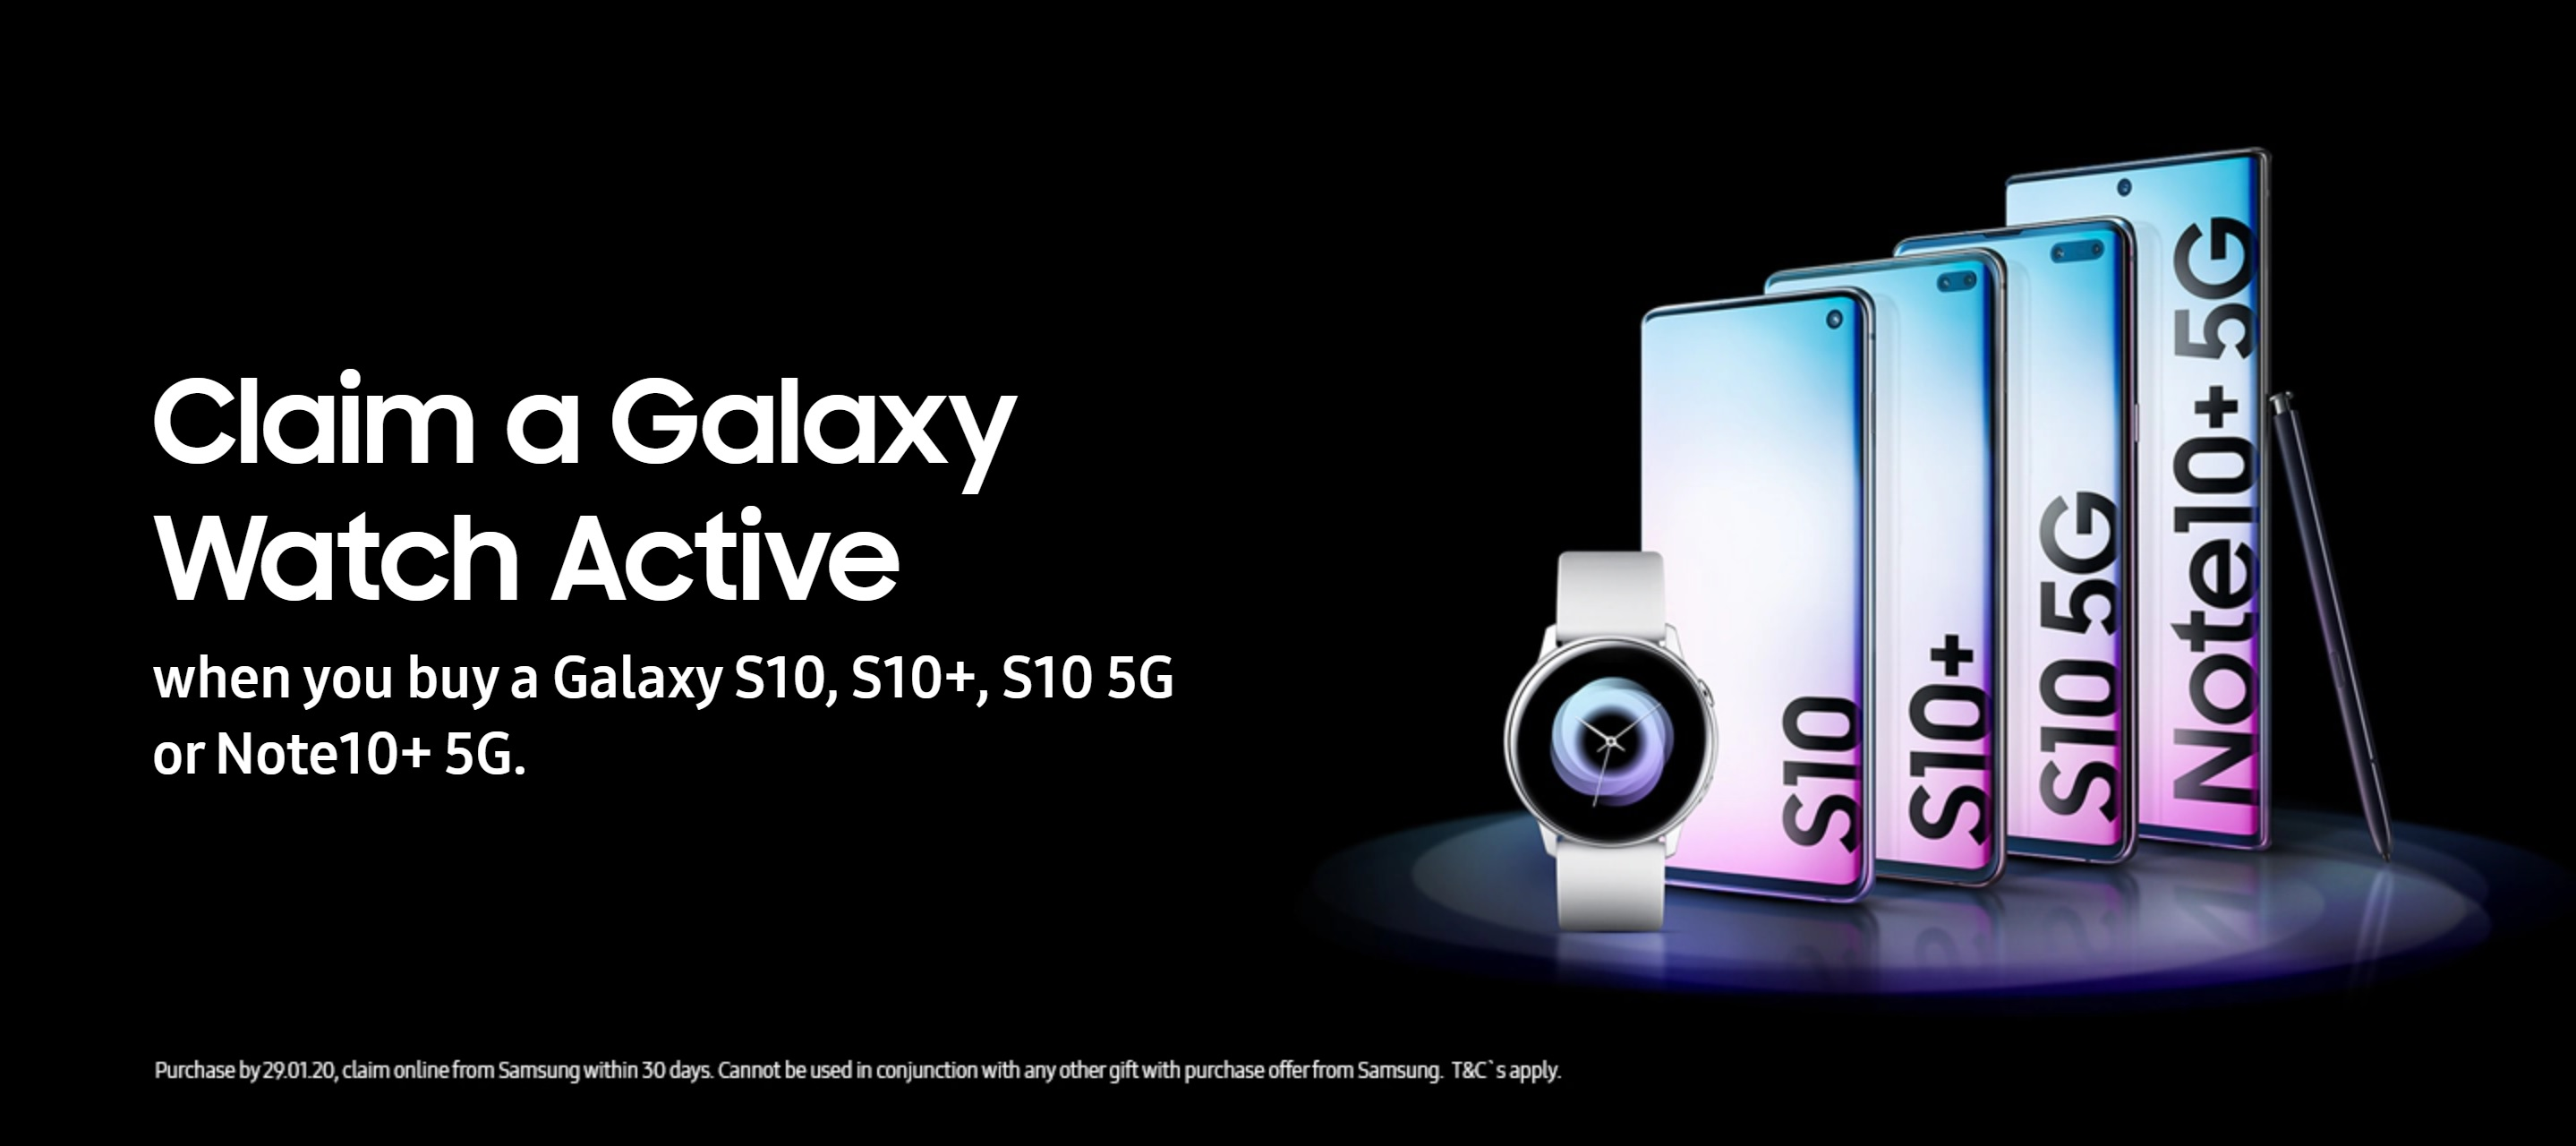 Free Galaxy Watch Active with Samsung Galaxy S10, S10+ and Note 10+ 5G contract and upgrade deals